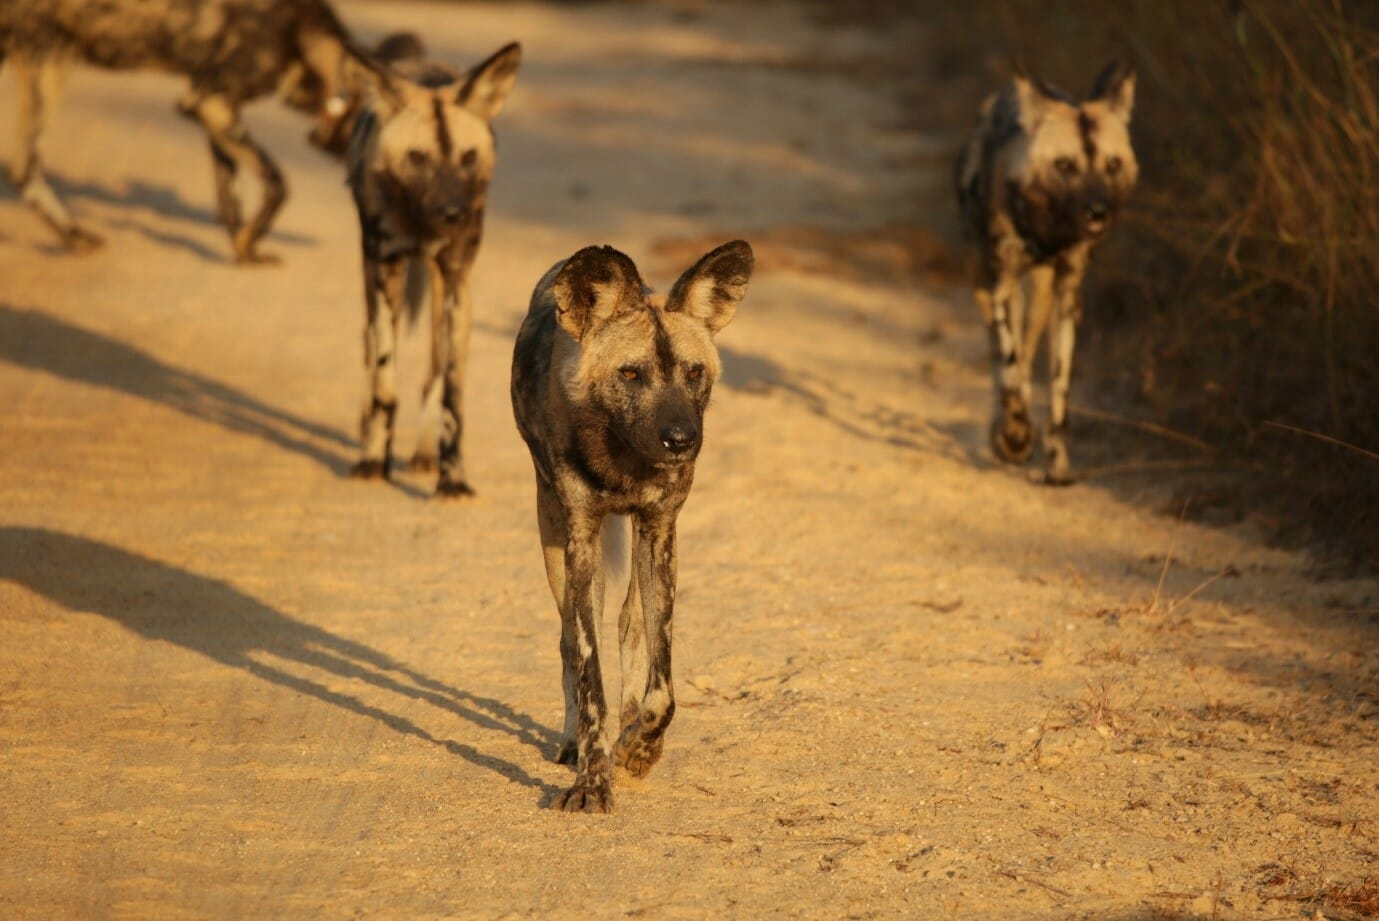 Game drives form part of your stay at Kruger Shalati. We found a playful pack of African wild dogs on our morning safari. Photo by Heléne Ramackers